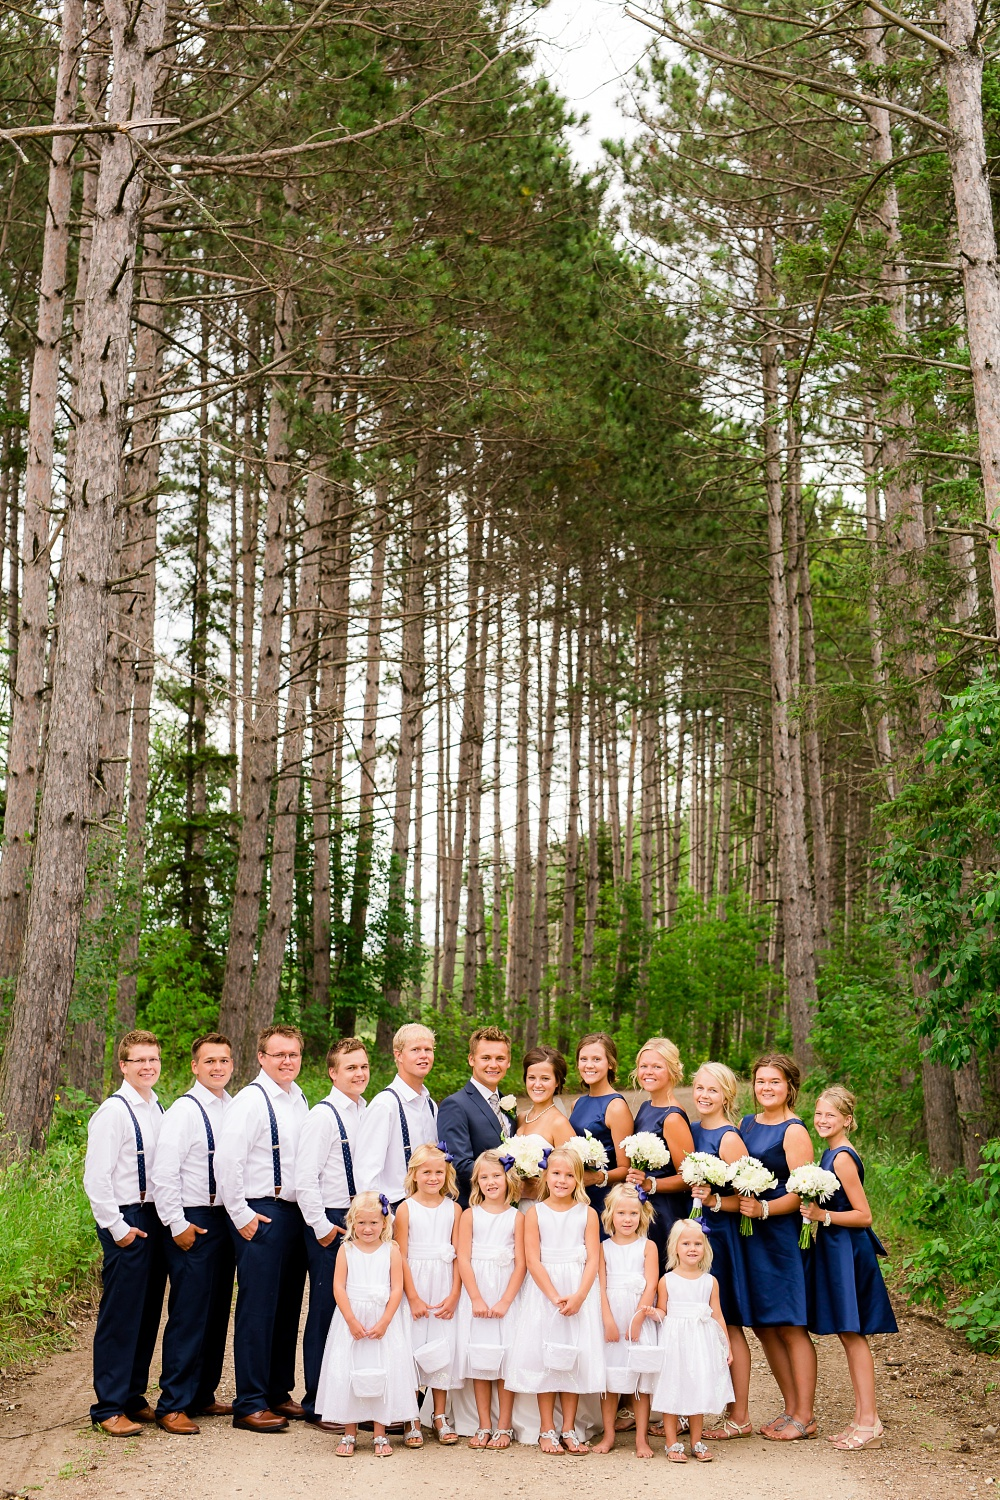 Wolf Lake, MN Country Styled Wedding, White Dress, Blue Suite | Photographed by Amber Langerud Photography | Bridal Party